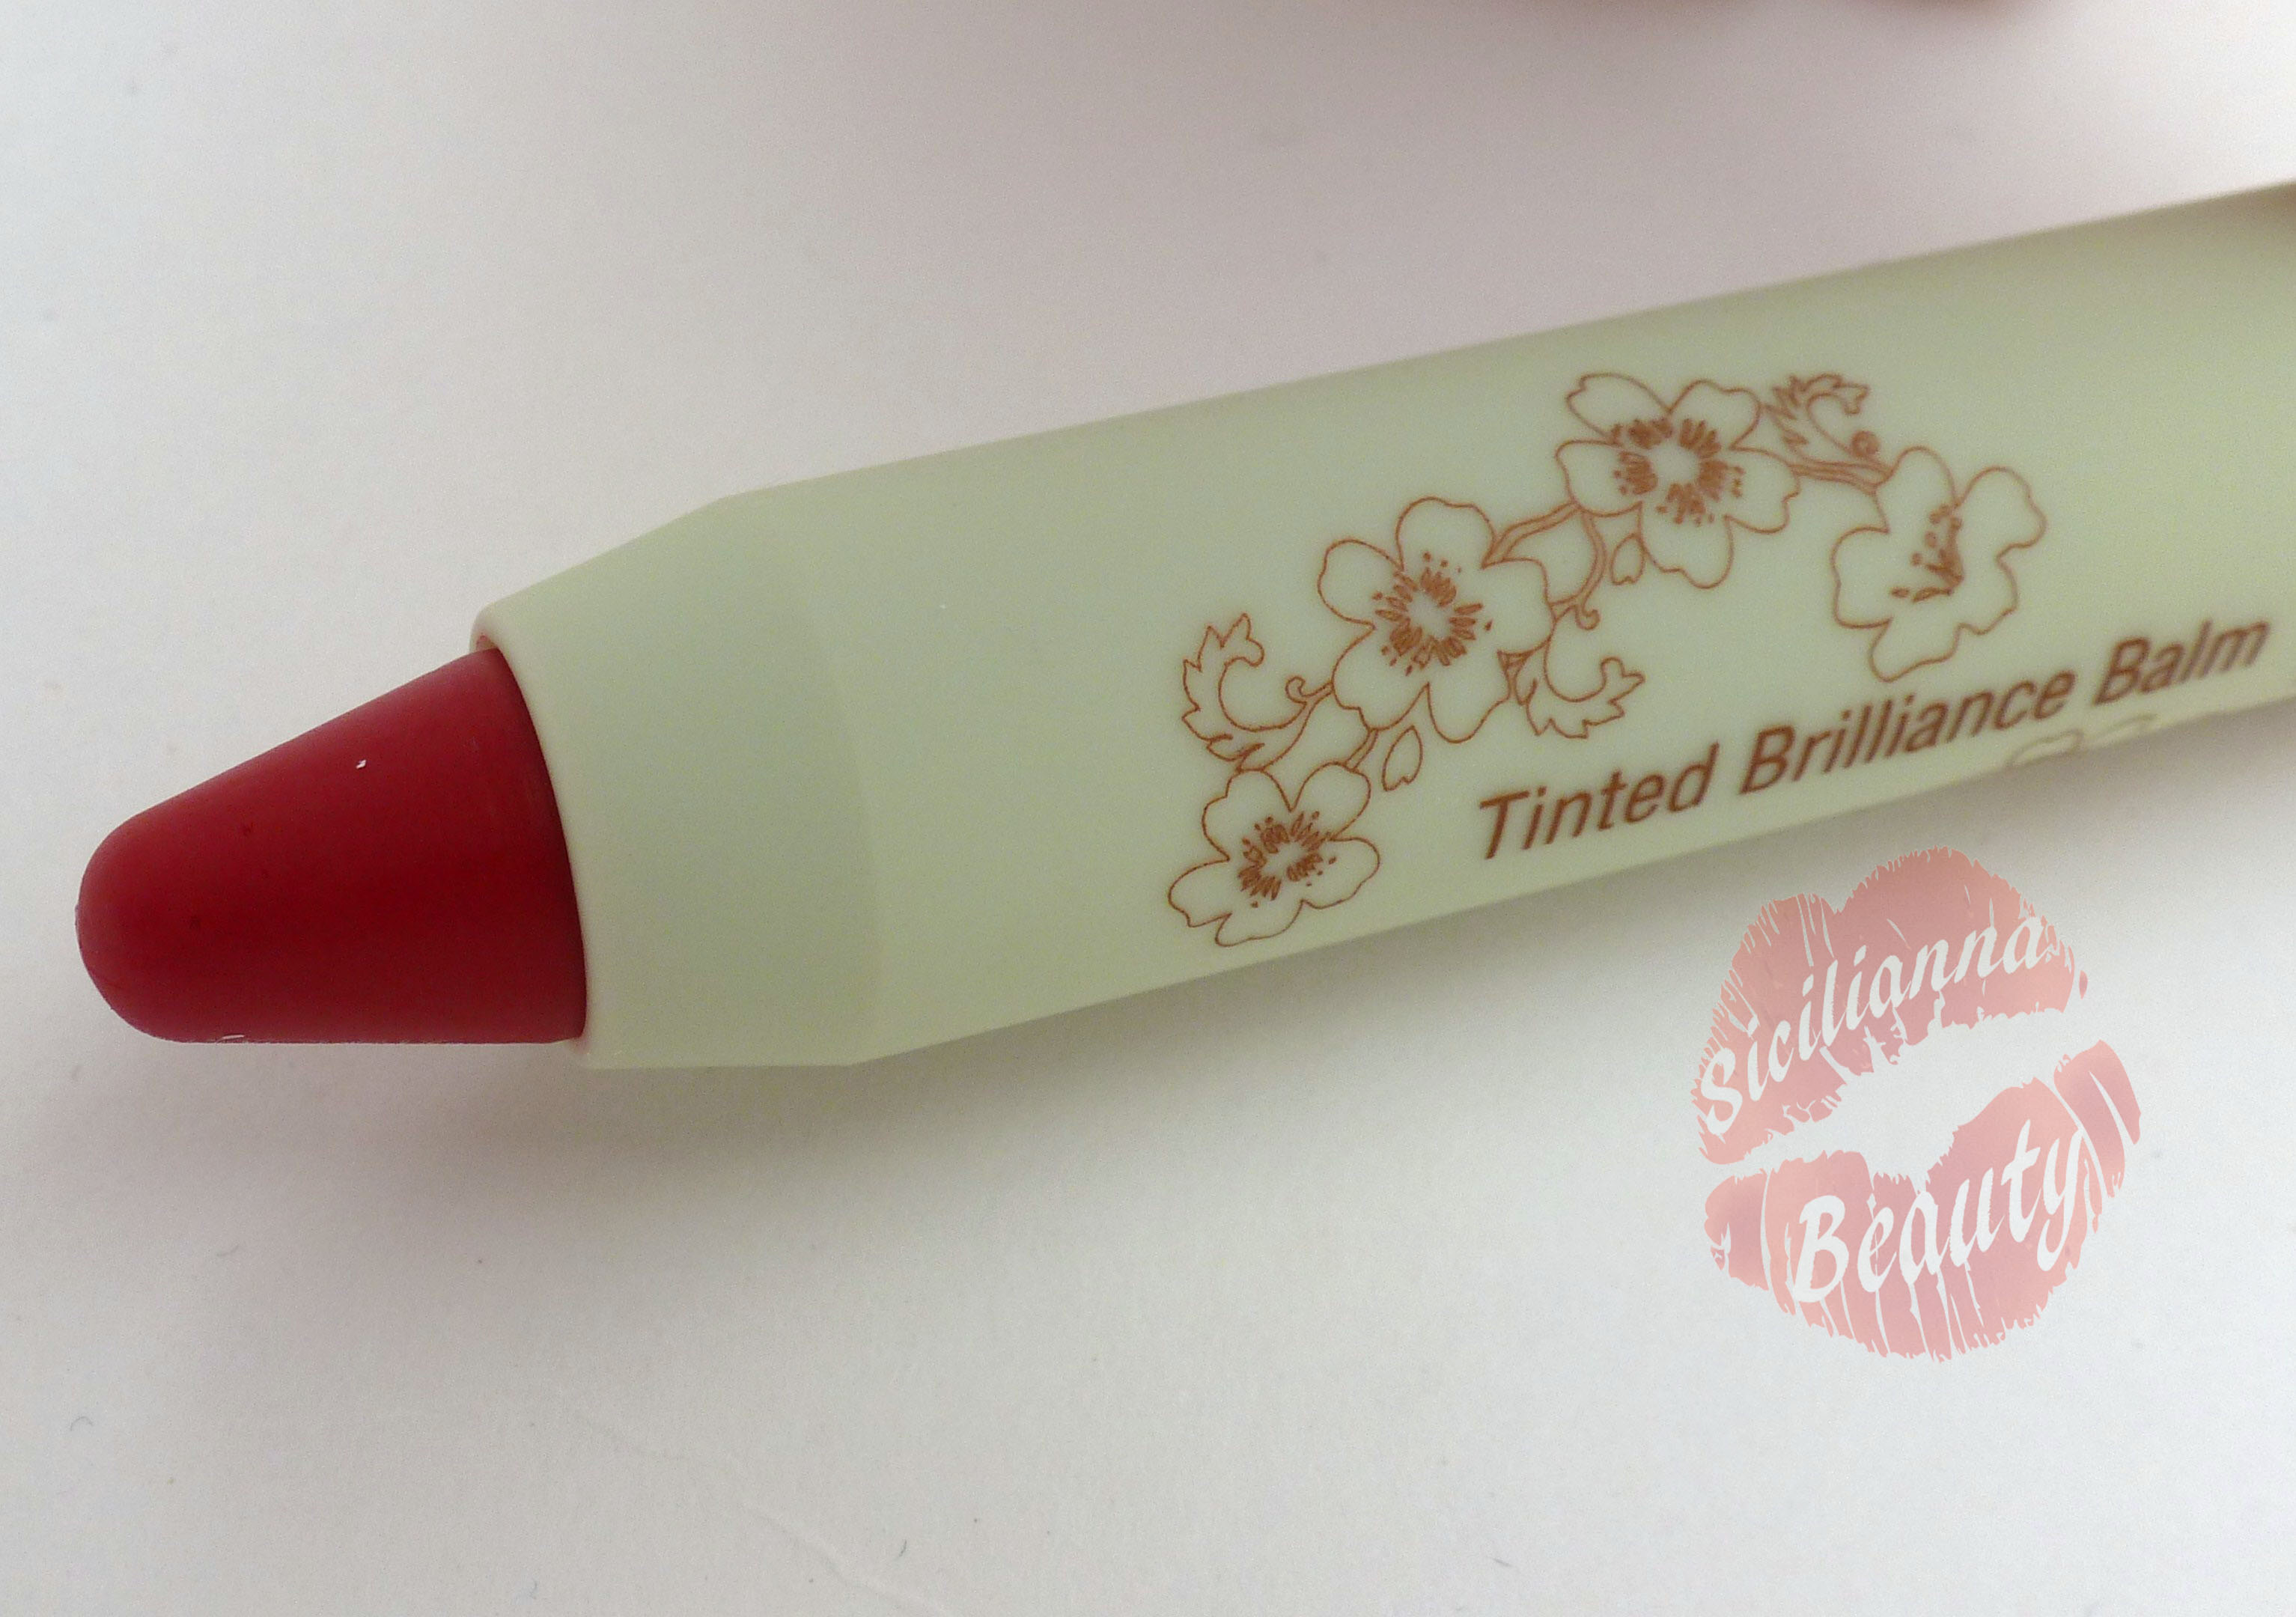 REVIEW: Pixi Beauty Tinted Brilliance Balm in Rosy Red